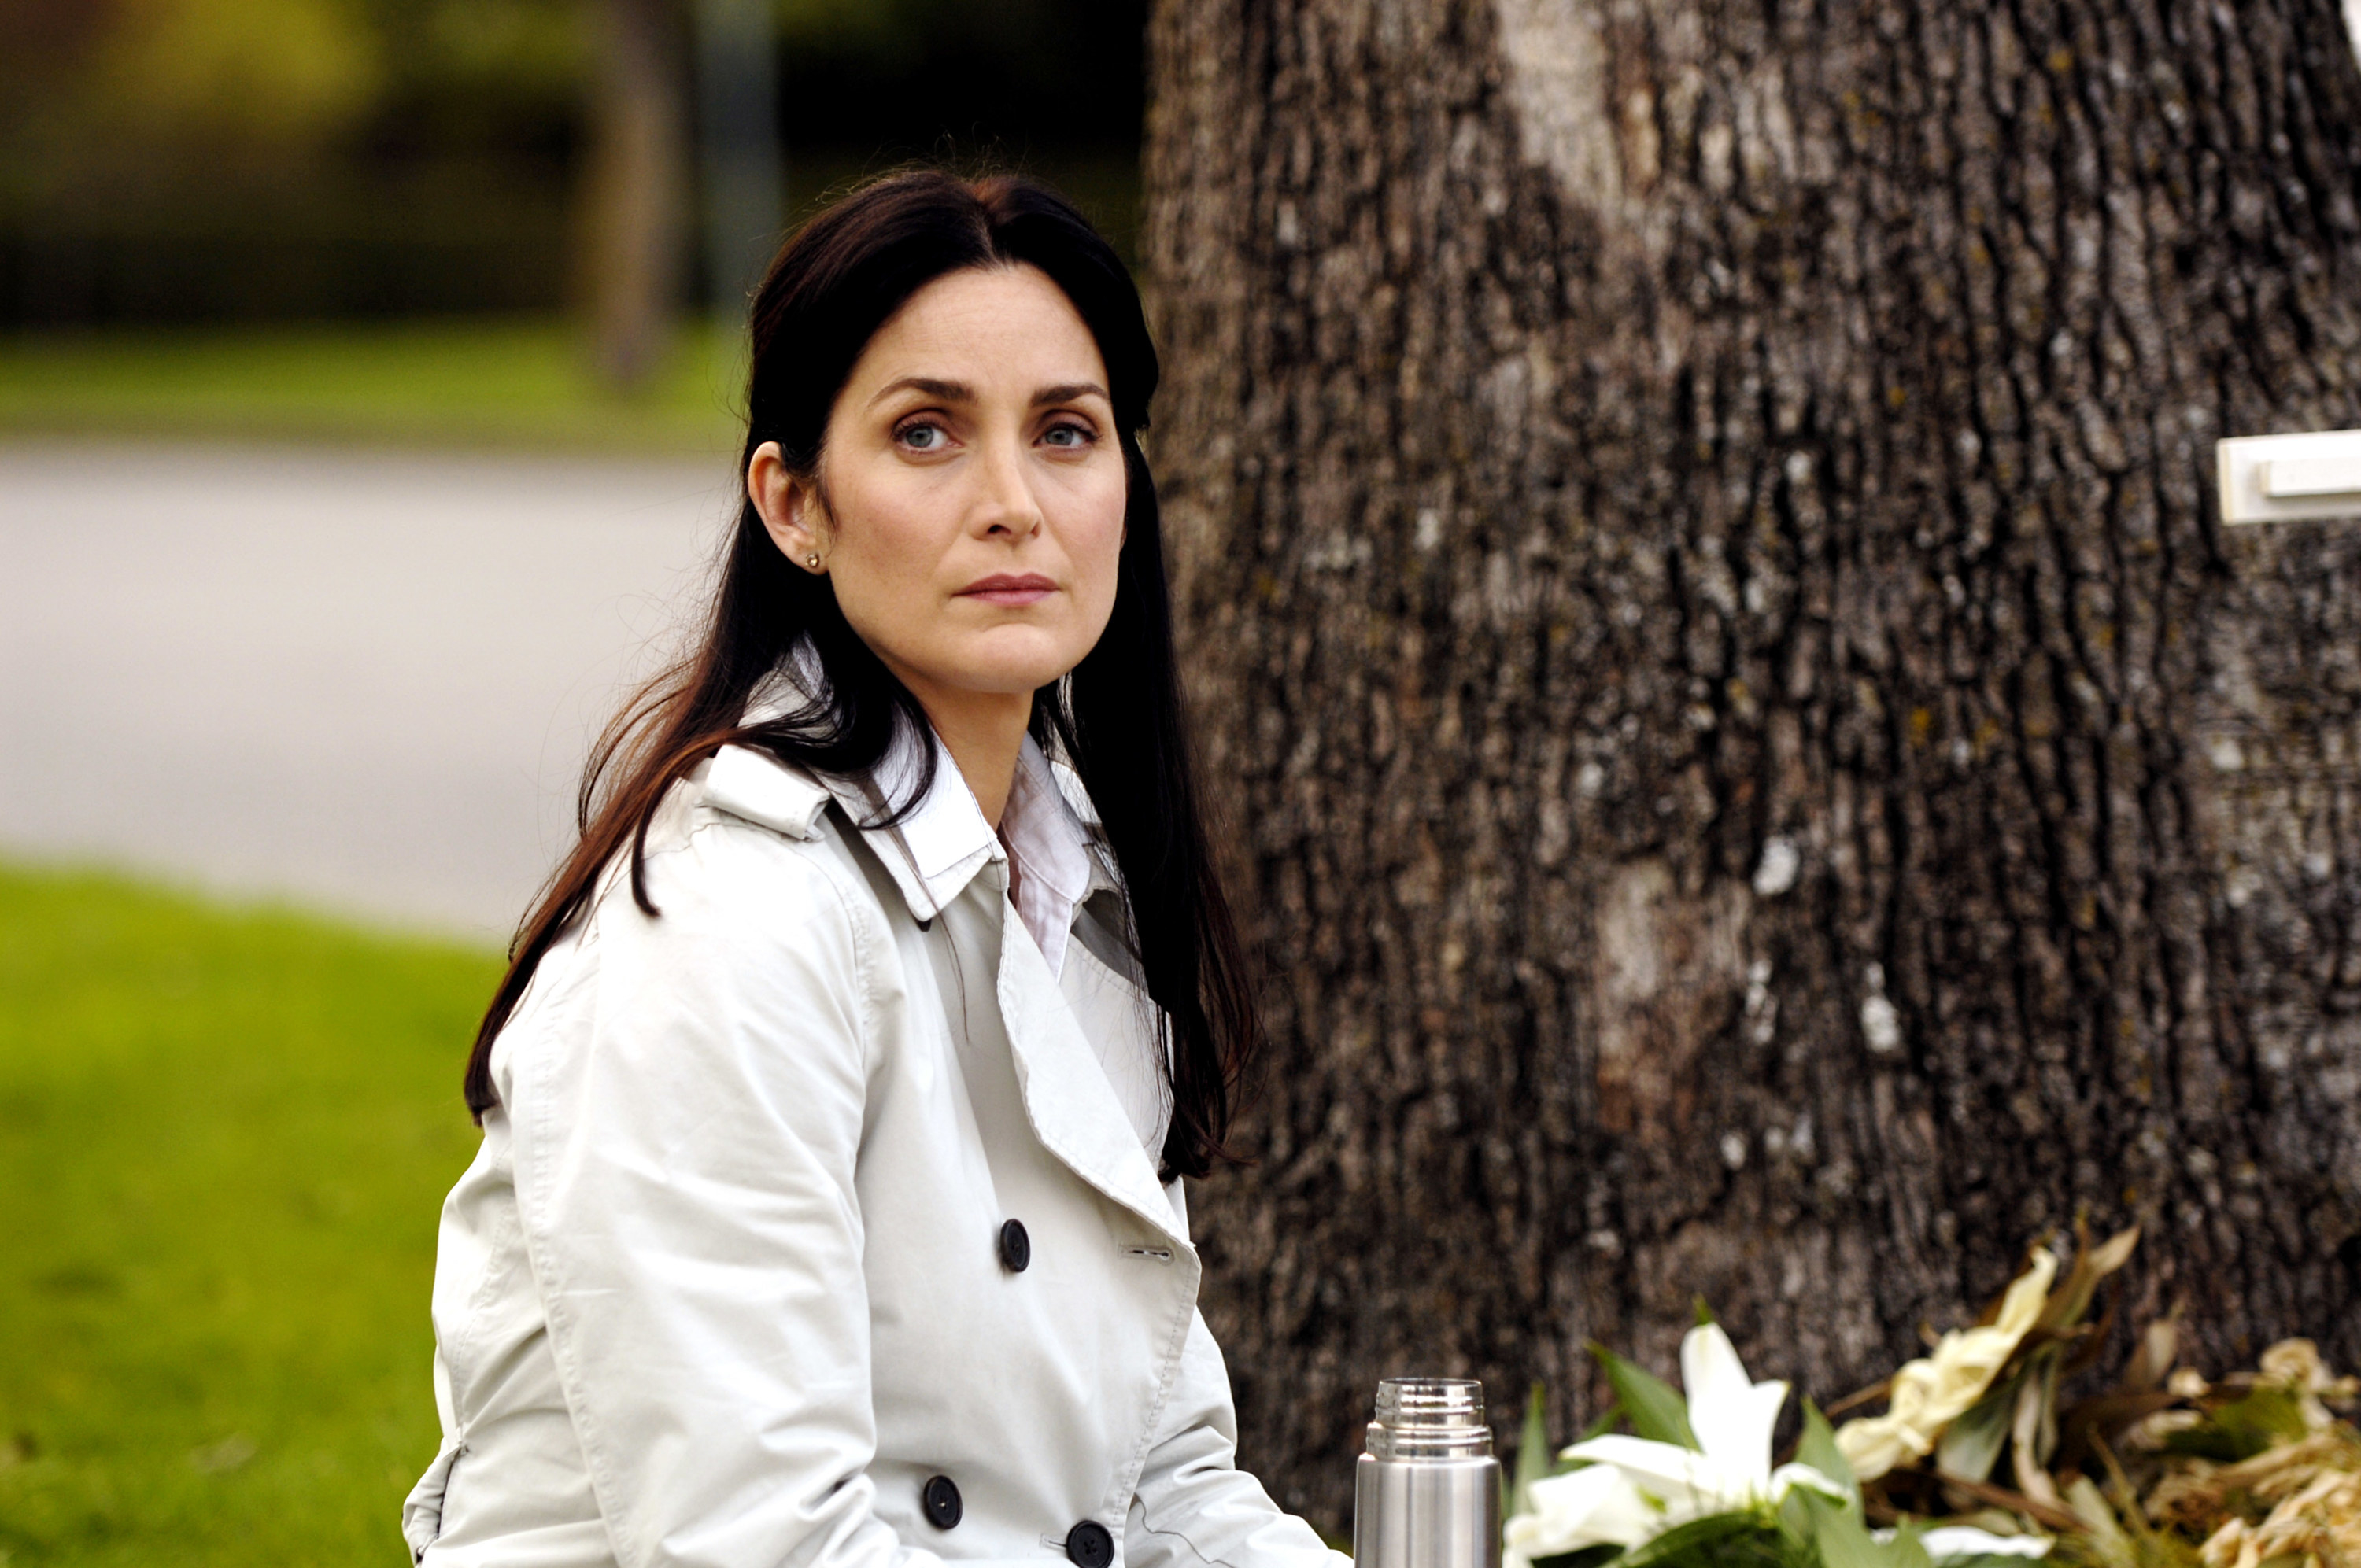 Moss sits by a tree in the film Normal